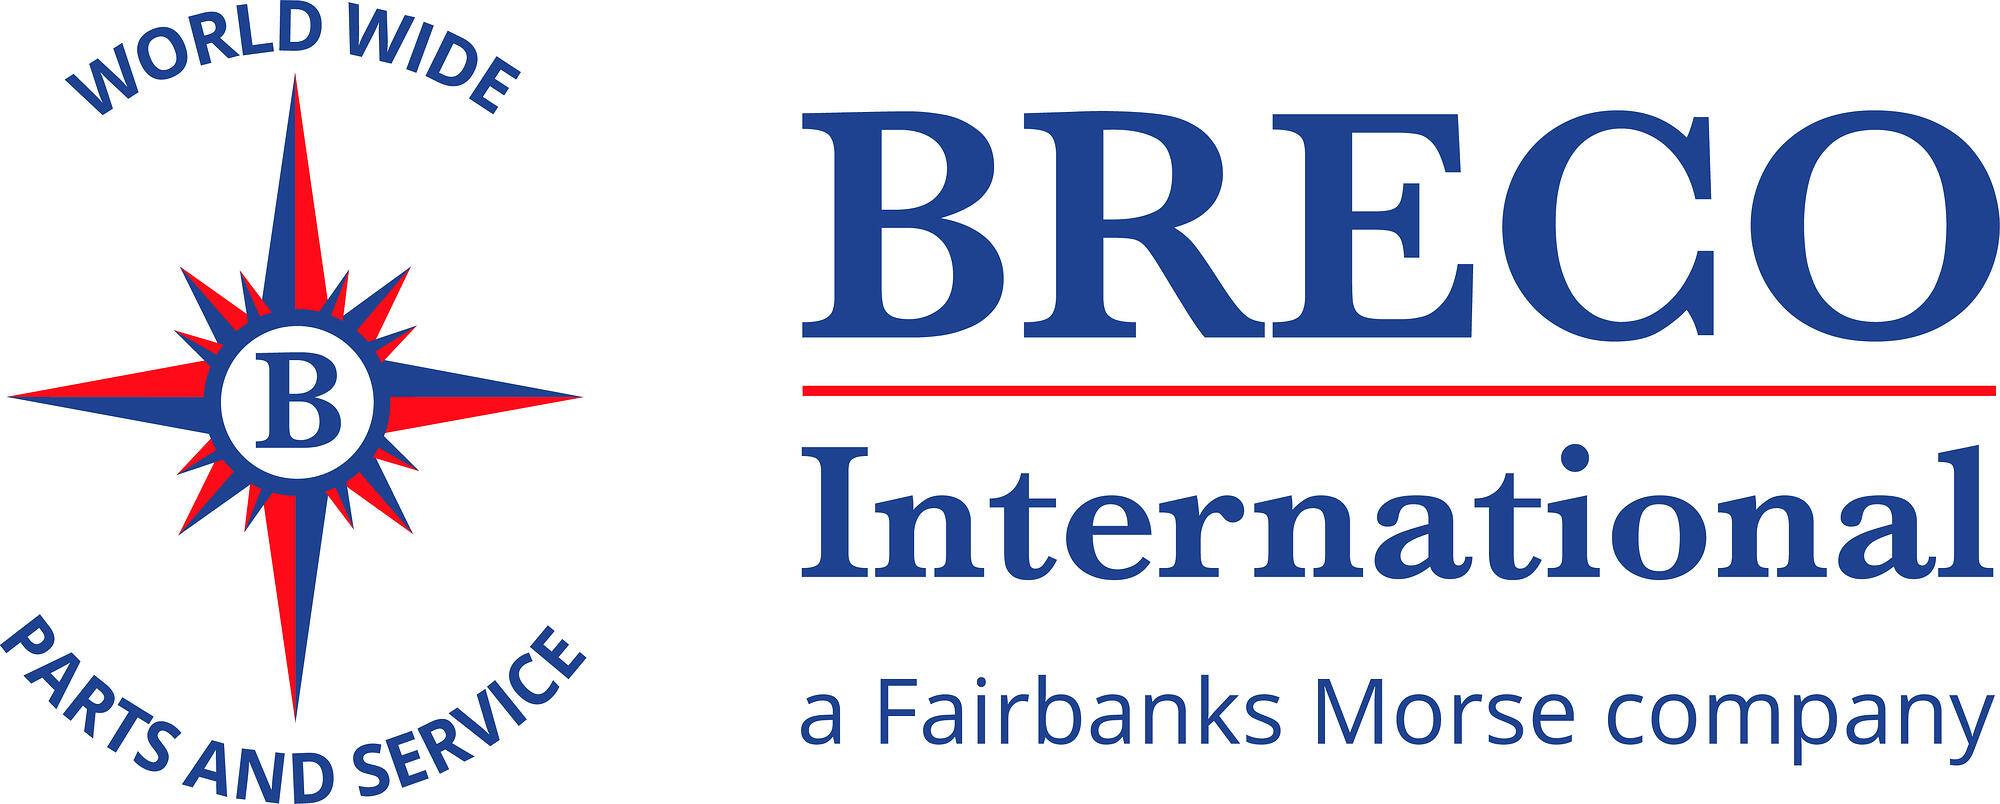 Breco International Worldwide Parts and Service Logo